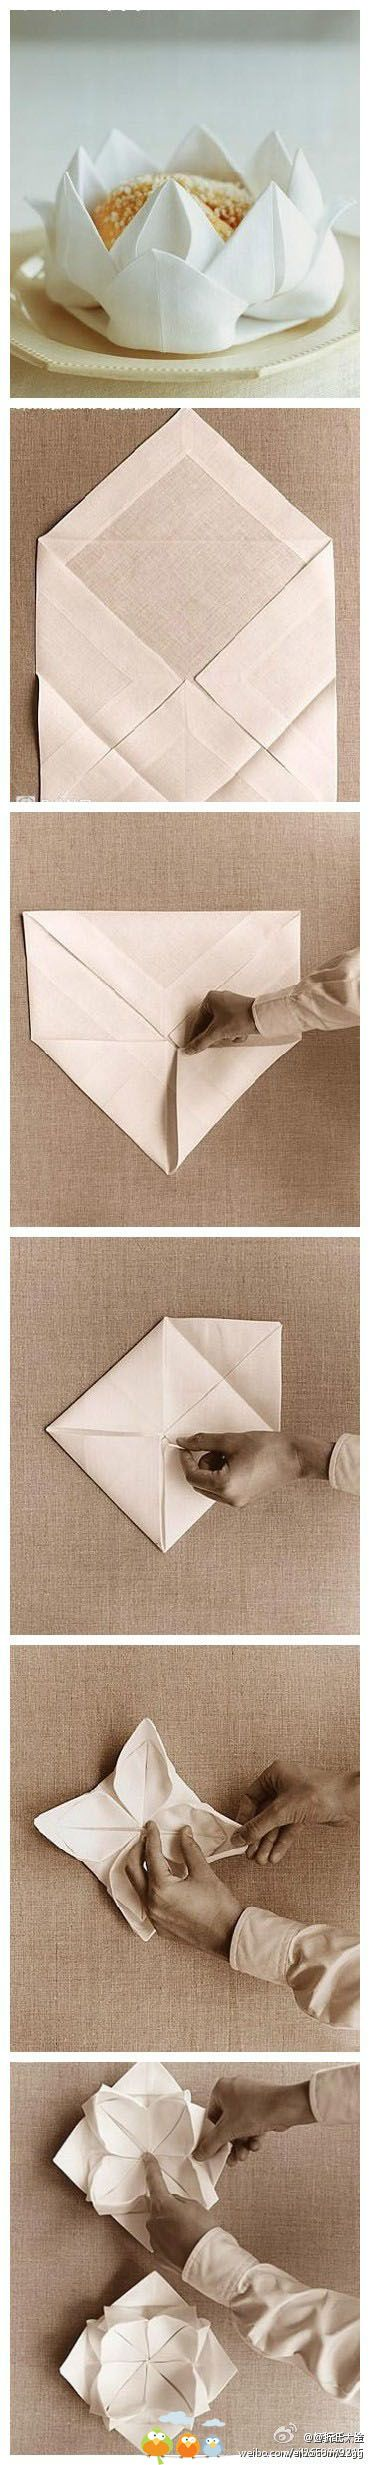 napkin folding techniques @Annamarie Fontaine collection